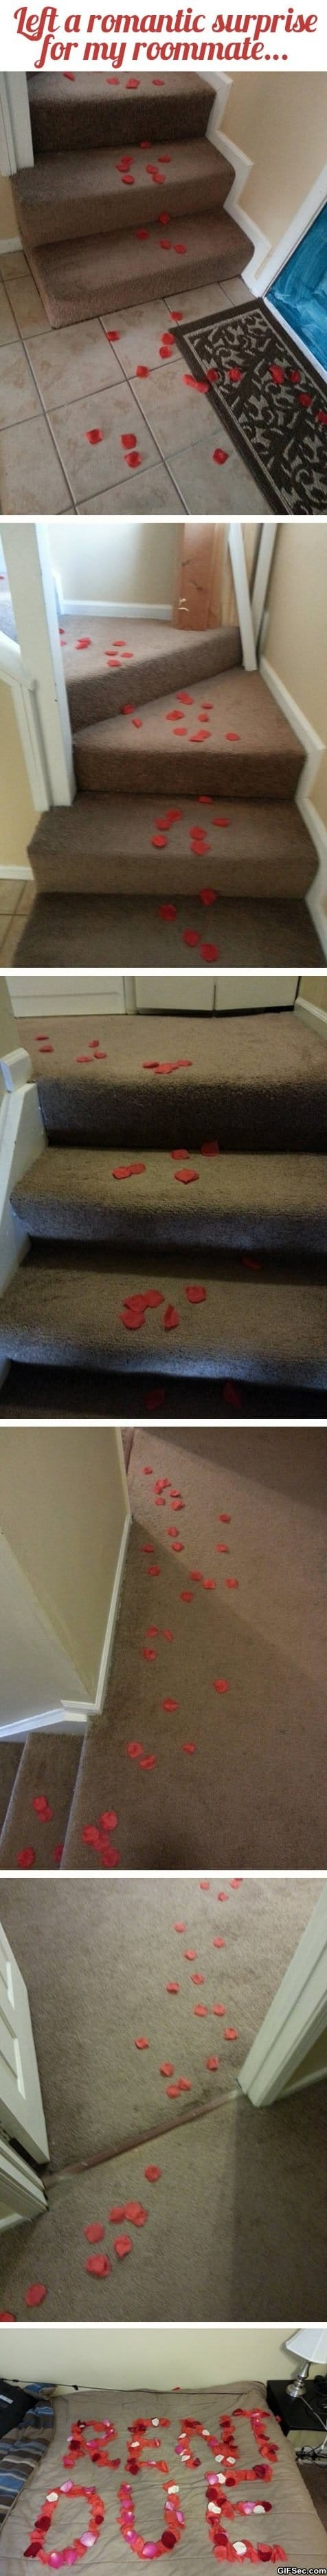 Funny - Romantic Surprise